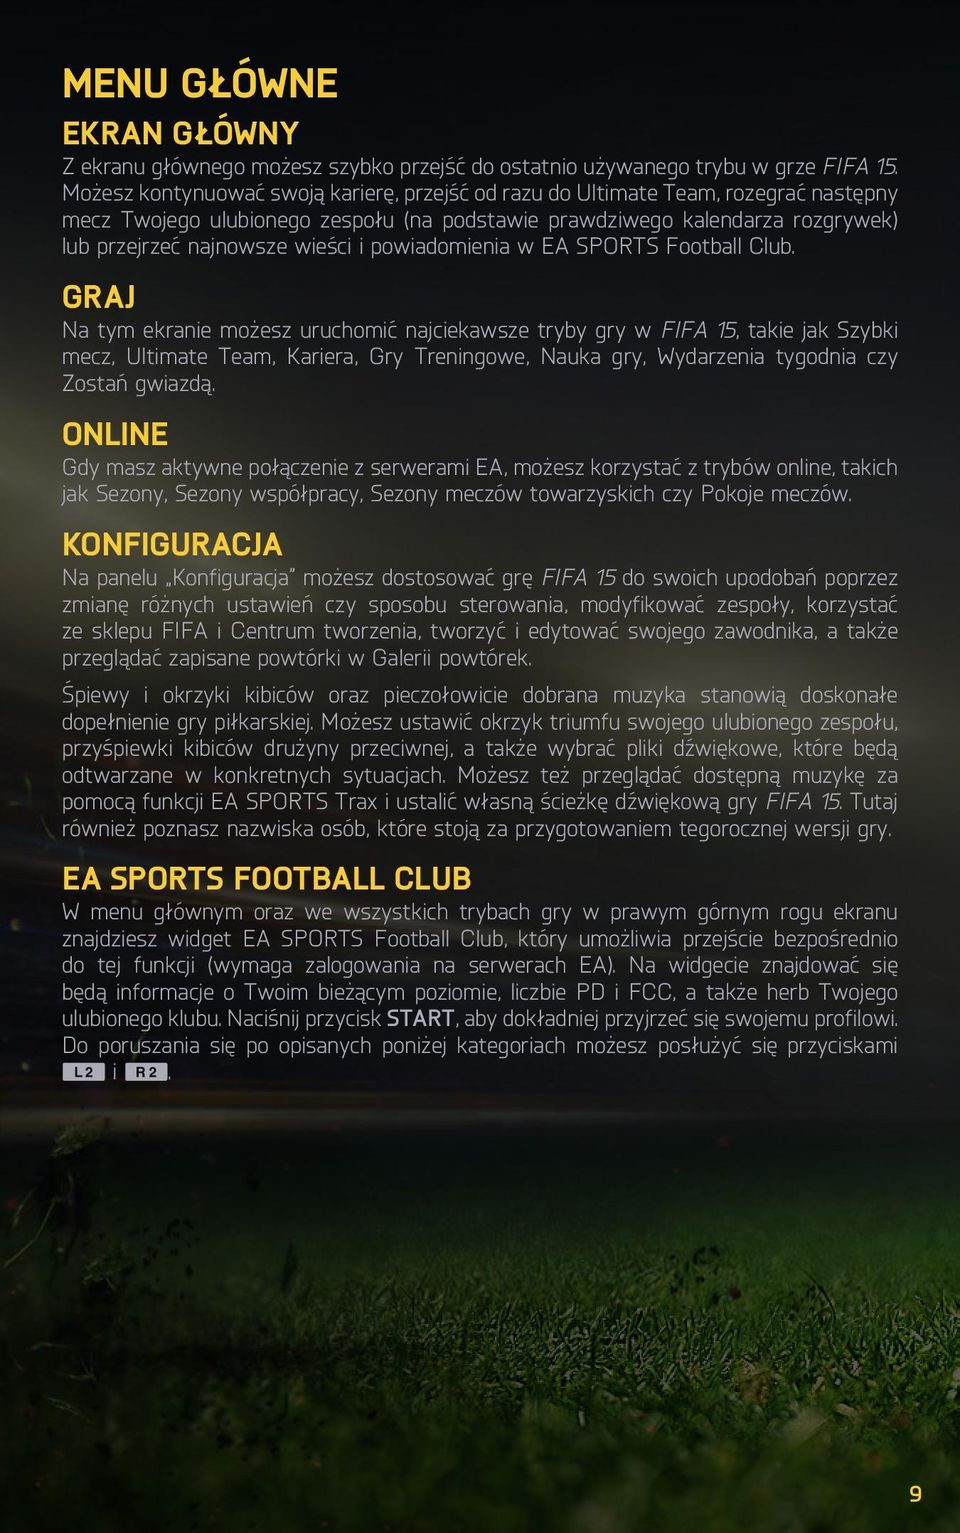 powiadomienia w EA SPORTS Football Club.